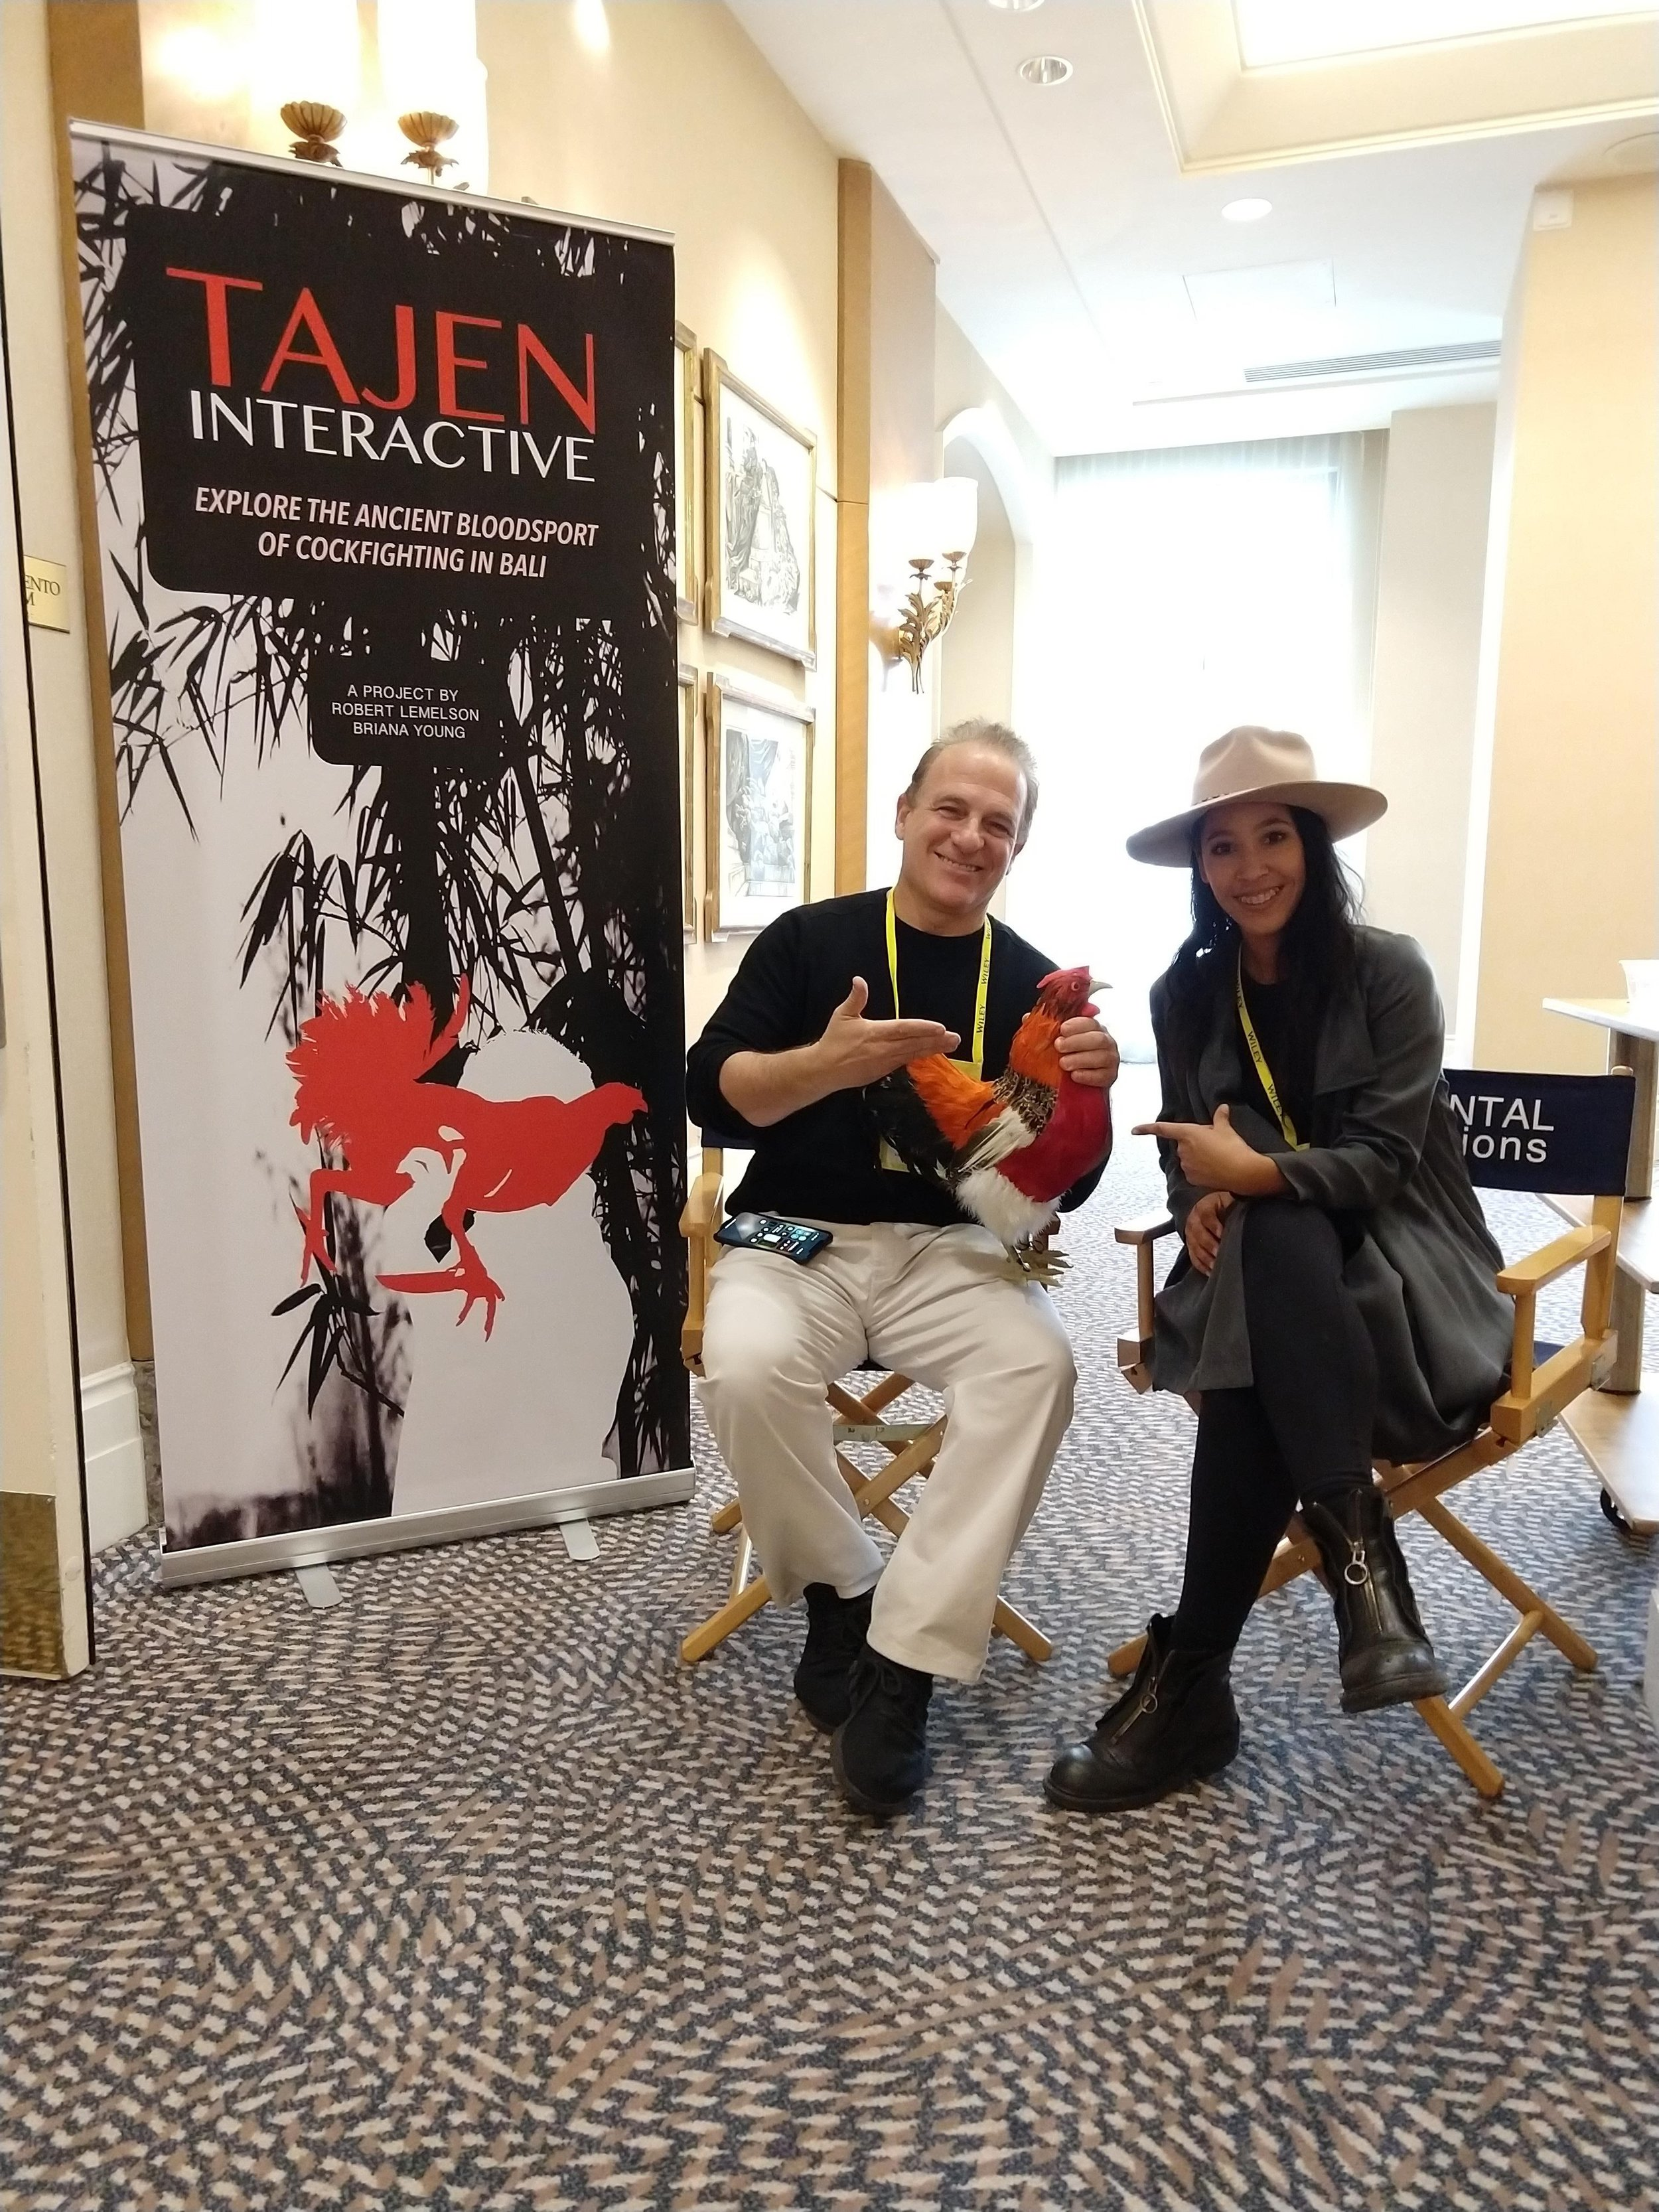 Director Robert Lemelson and co-director Briana Young at an installation of Tajen: Interactive at the 2018 Annual American Anthropologist Conference in November 2018 in San Jose, CA